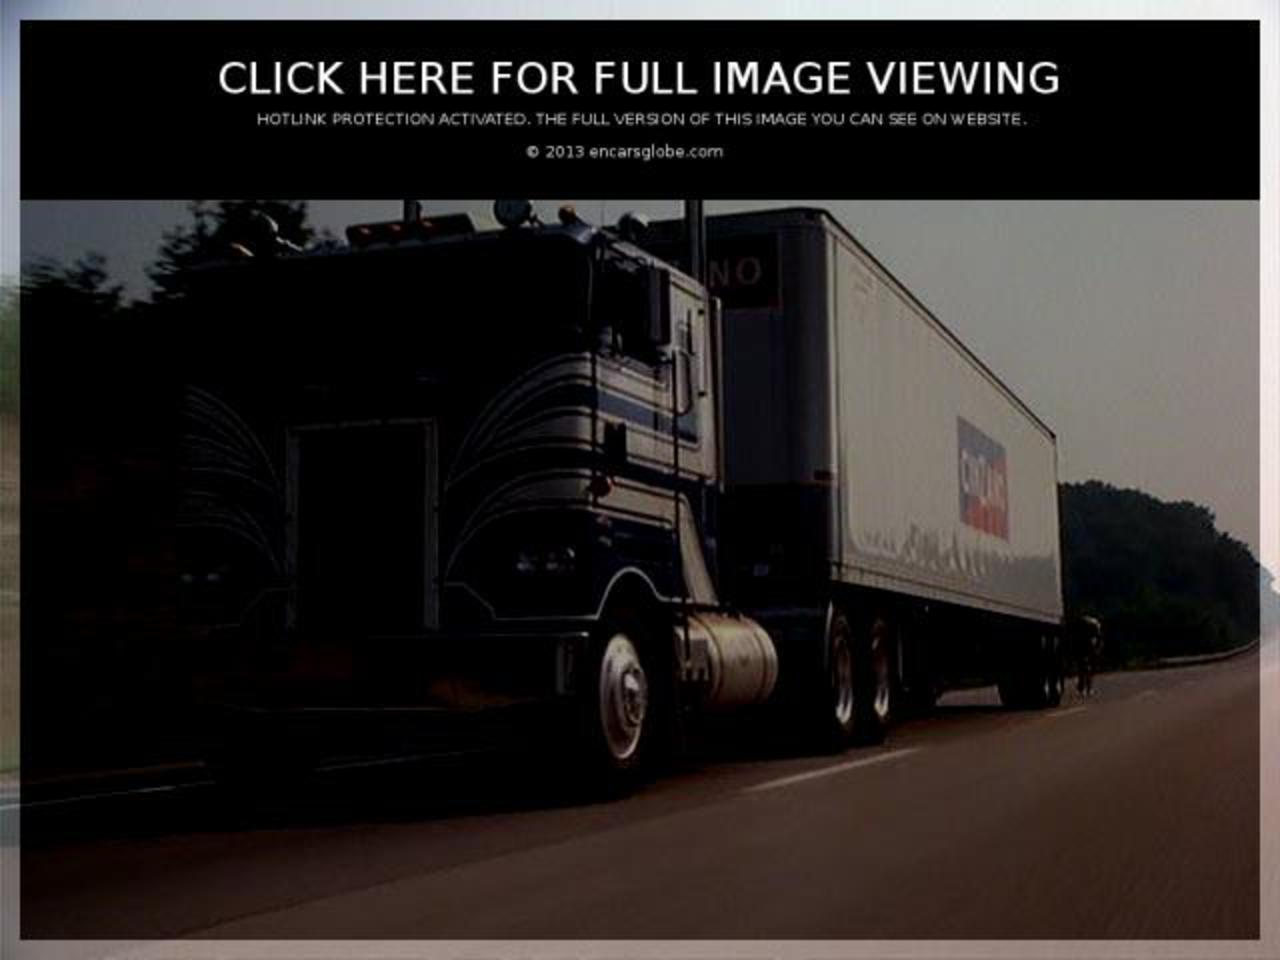 Peterbilt 359 Souther Classic Photo Gallery: Photo #07 out of 8 ...